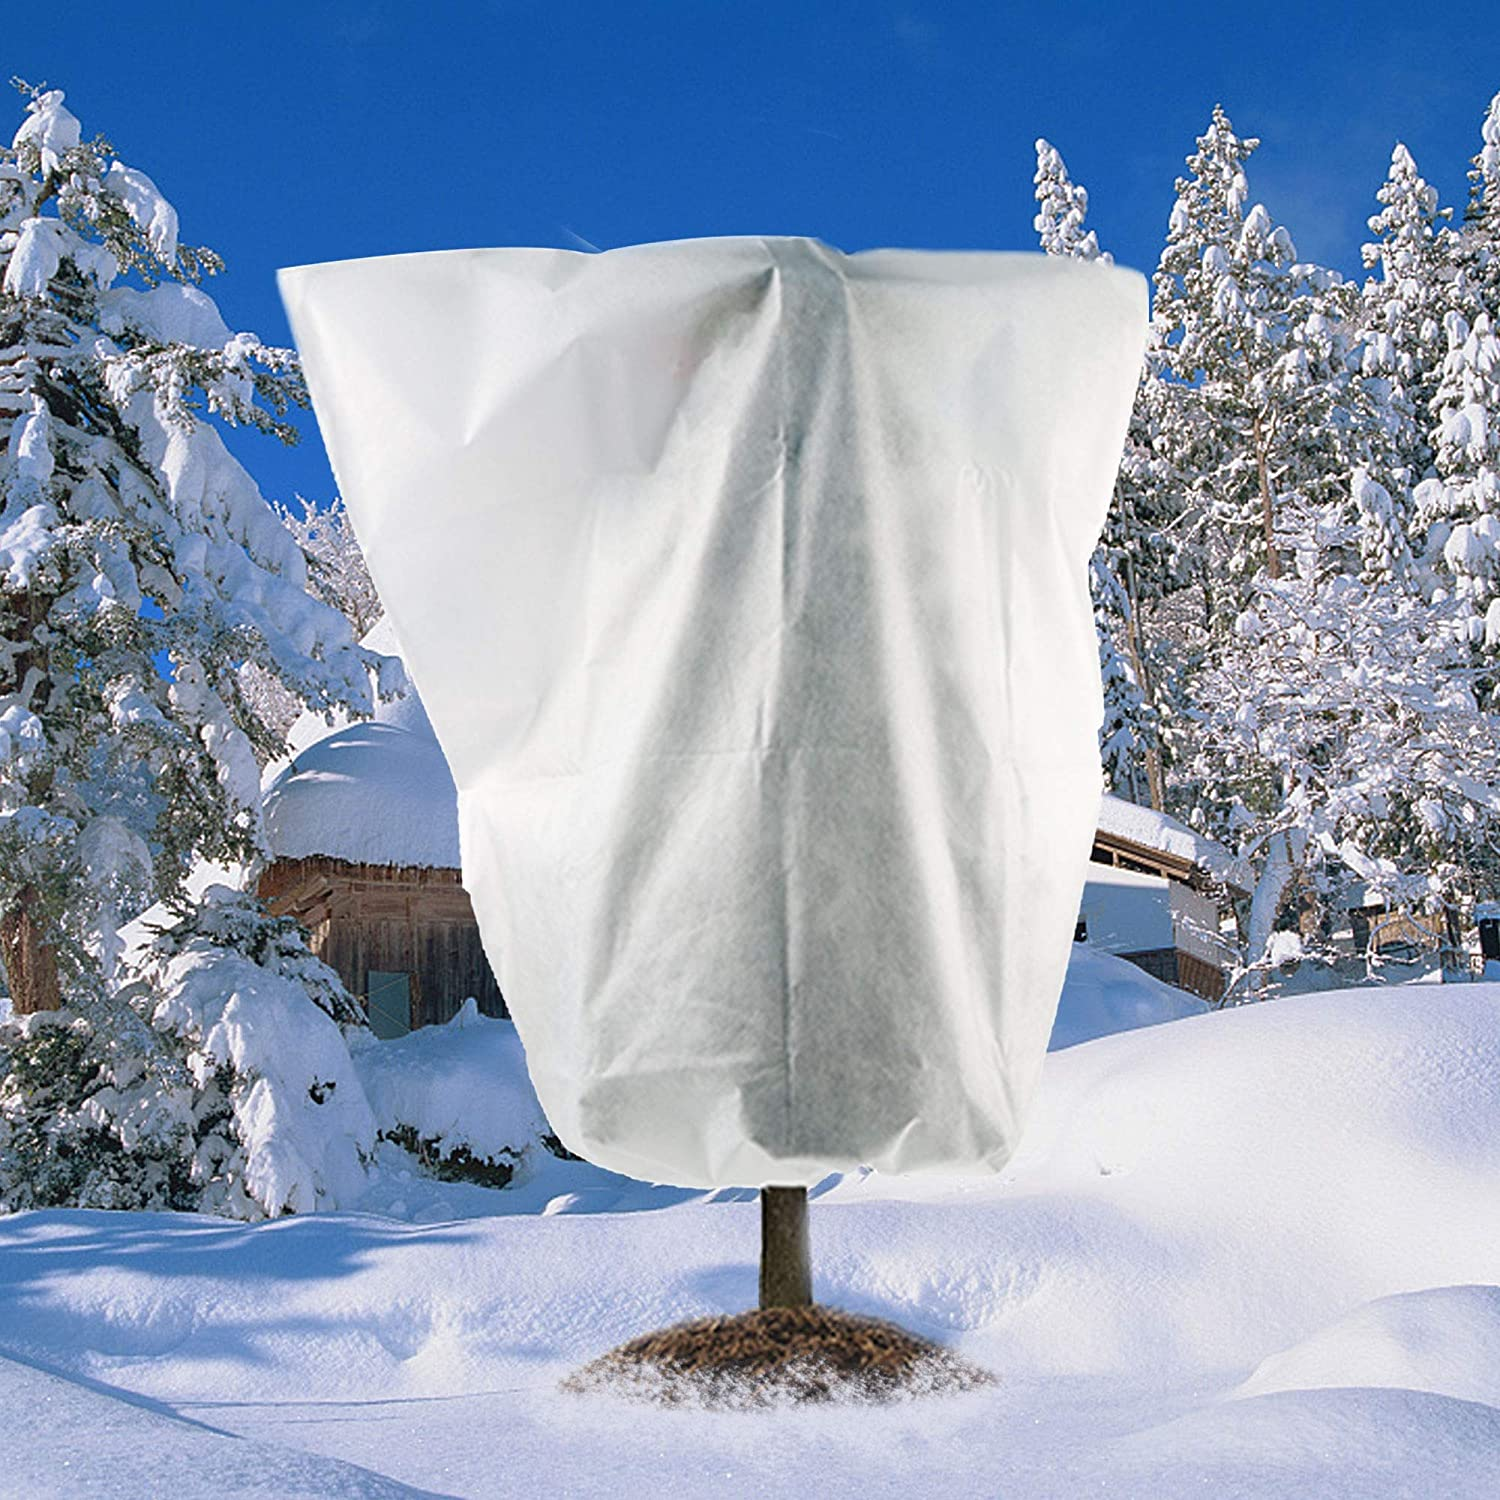 84 x 72//7 Ft x 6 Ft Frost Winter Protection Tree Wrap Bag Cold Weather Protection Cloth Cover Outdoor for Growing Season Extension and Freezing Protection Meekear Freeze Protection Plant Cover